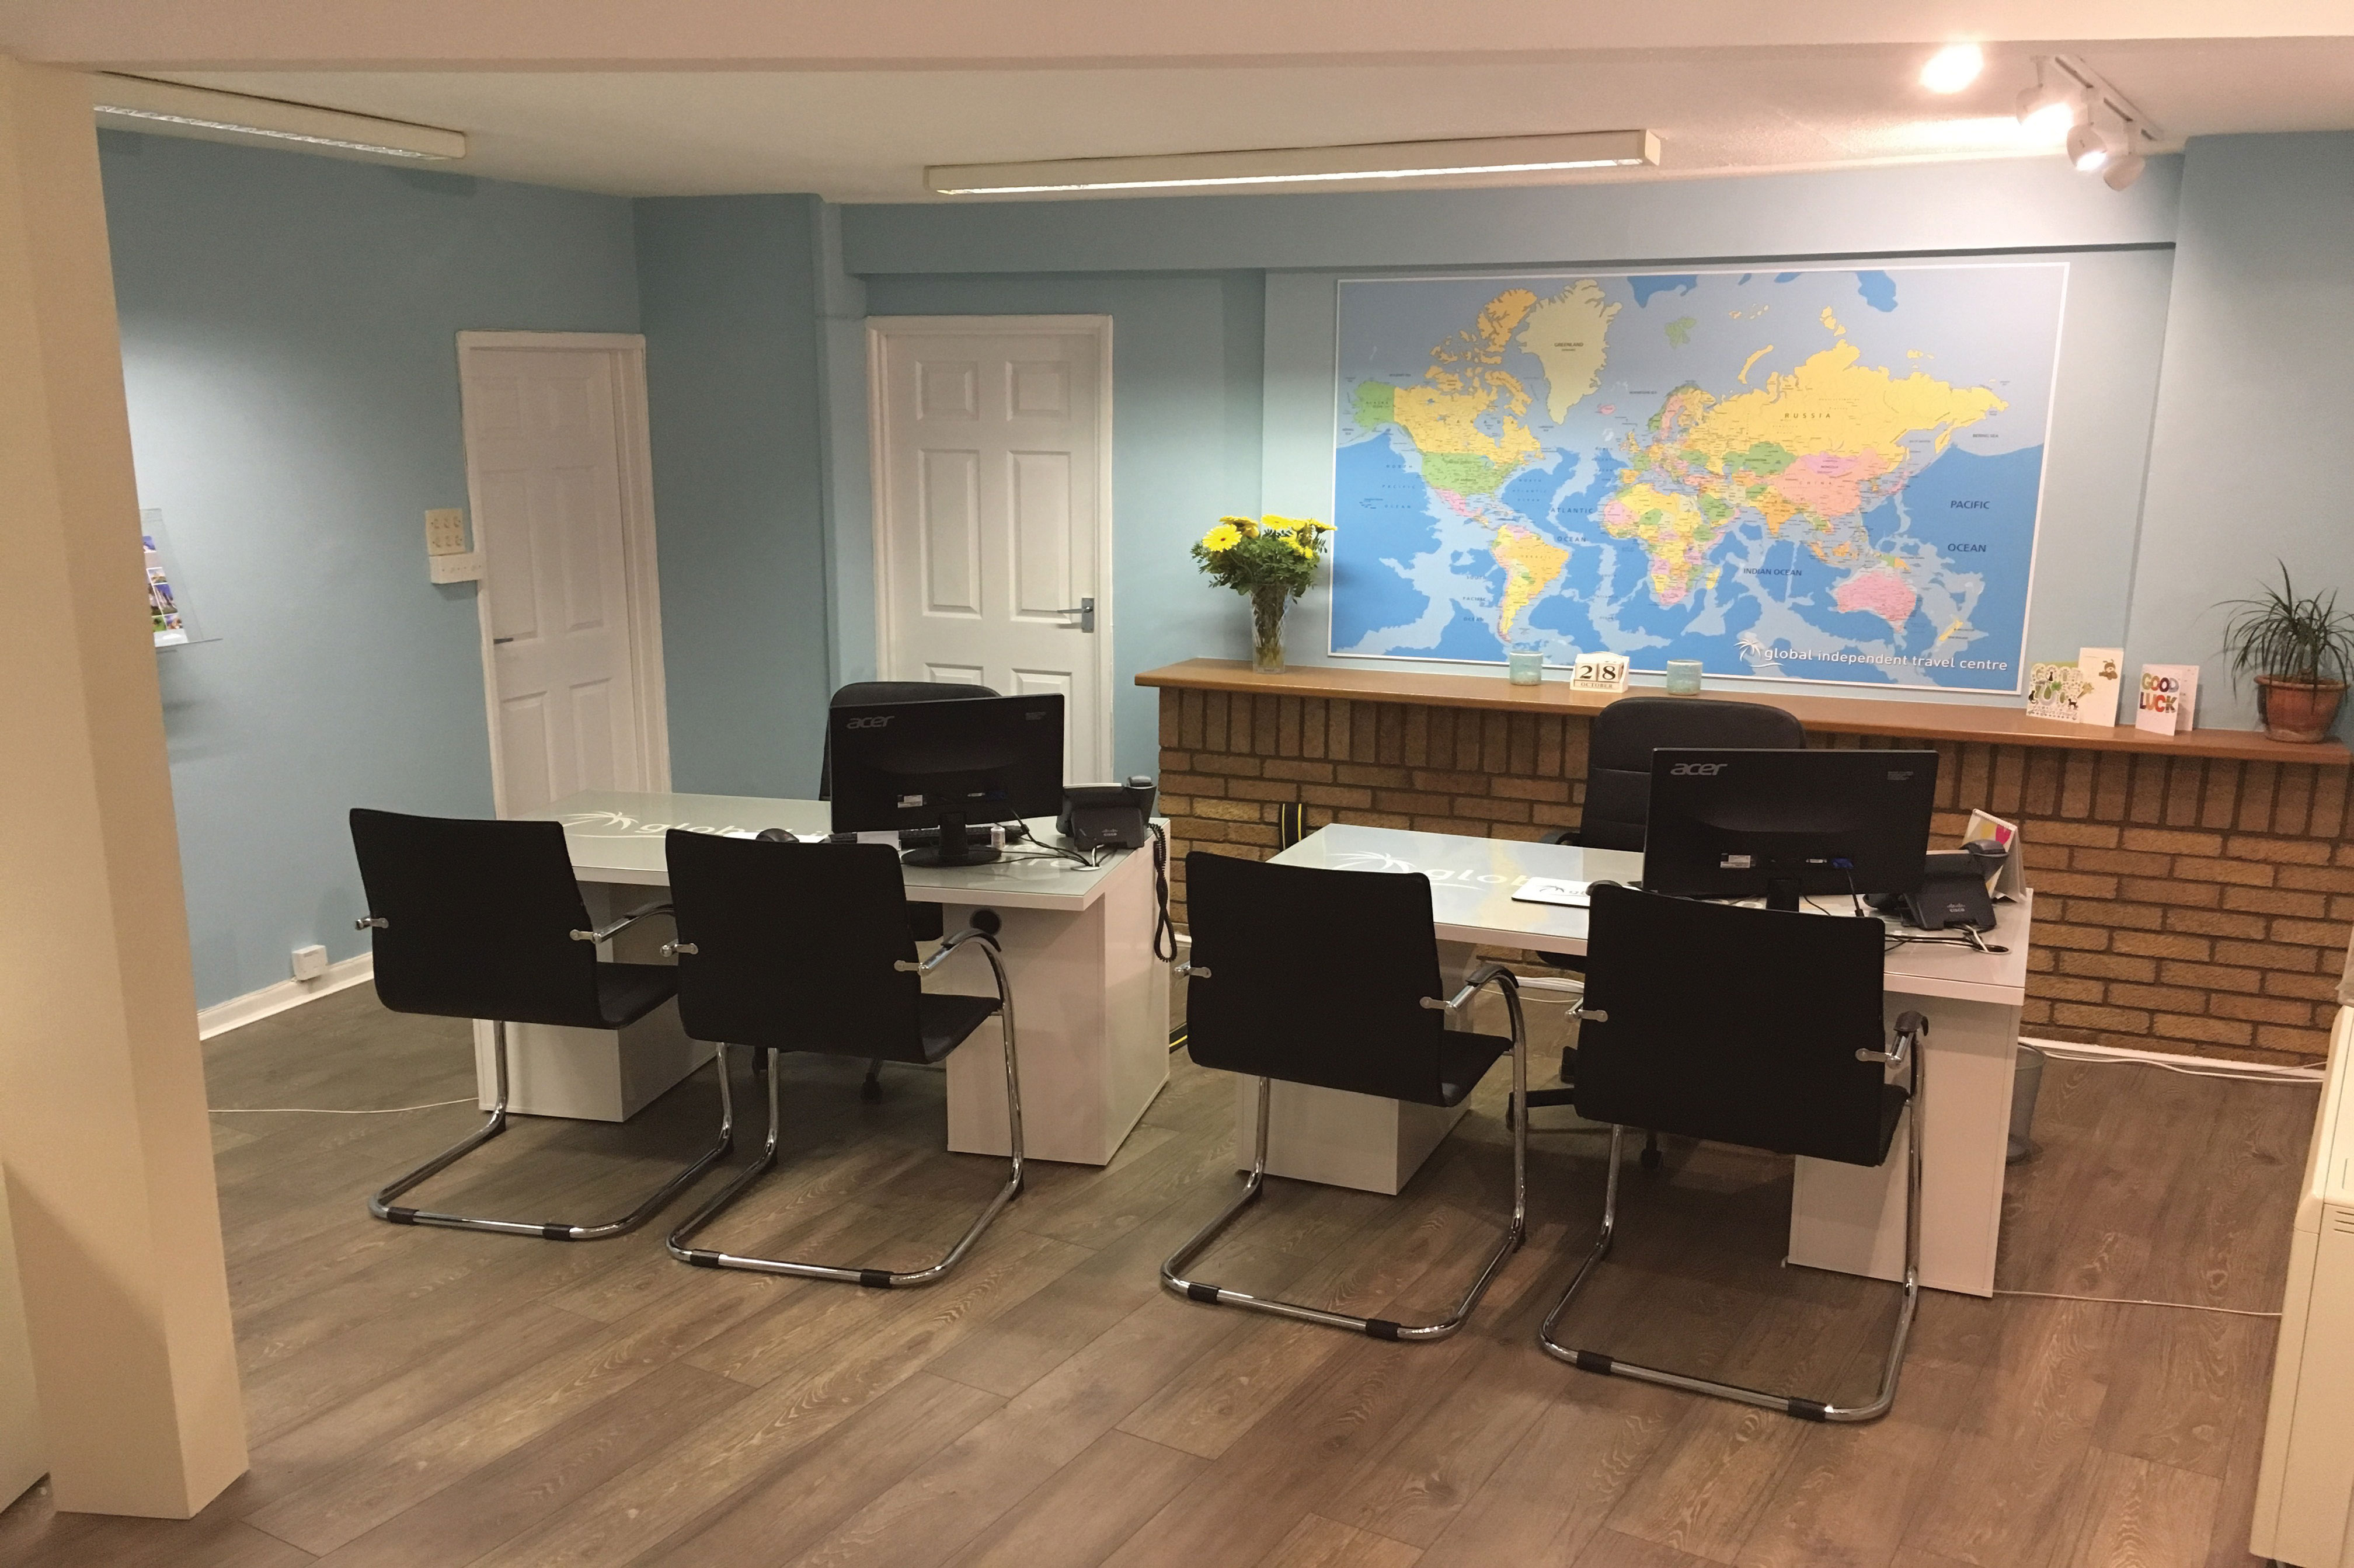 Queen of shops: Lisa Weakley opens second Global Independent Travel Centre